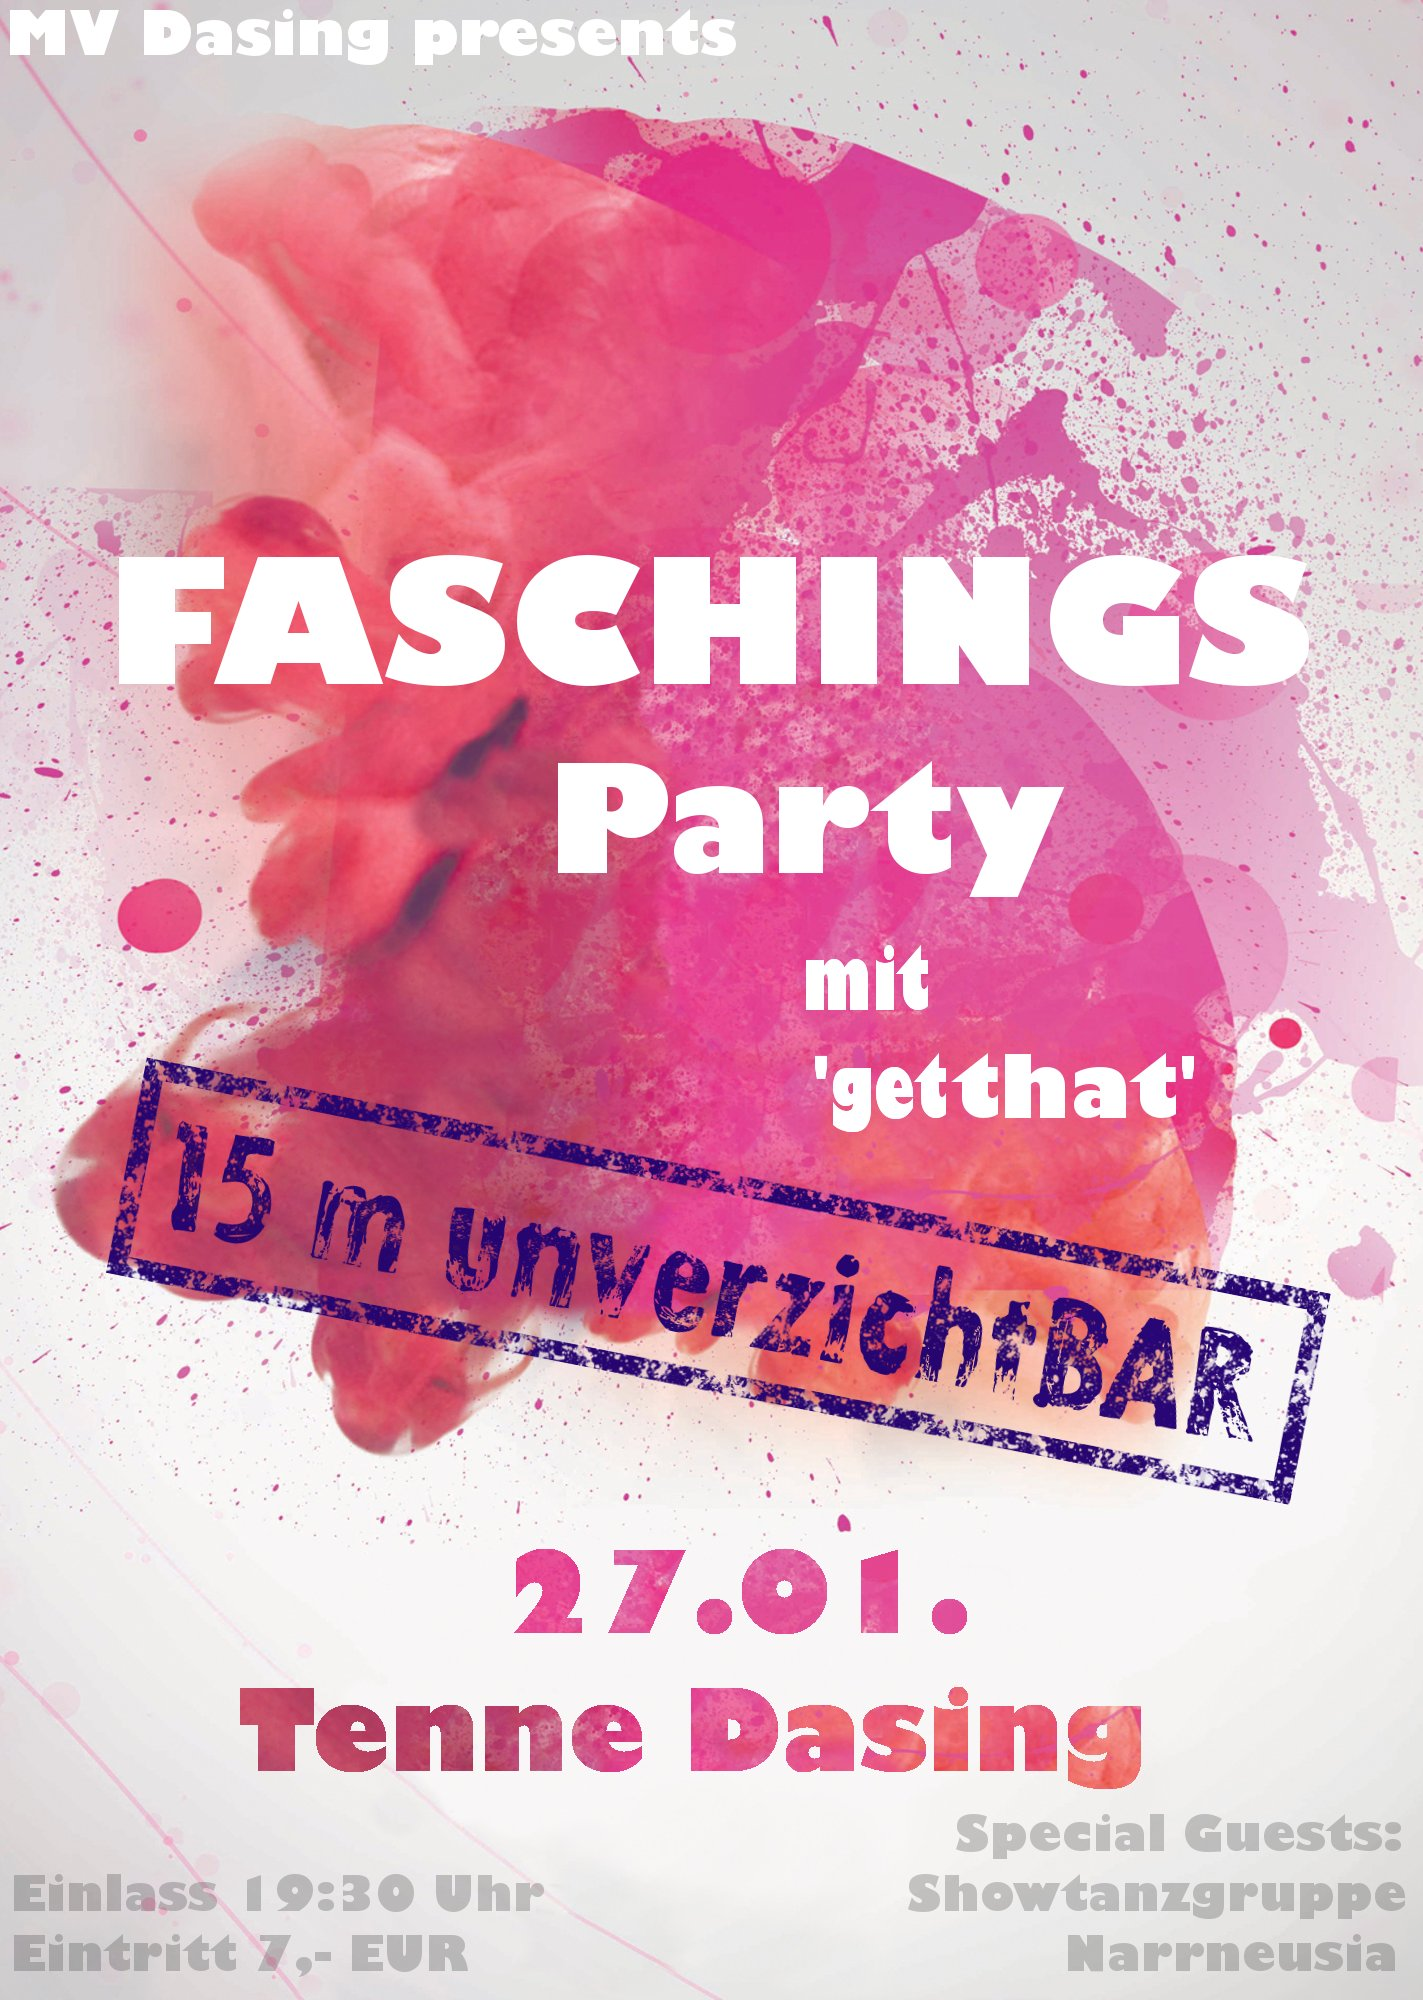 FASCHINGSPARTY TENNE DASING 27.01.2018